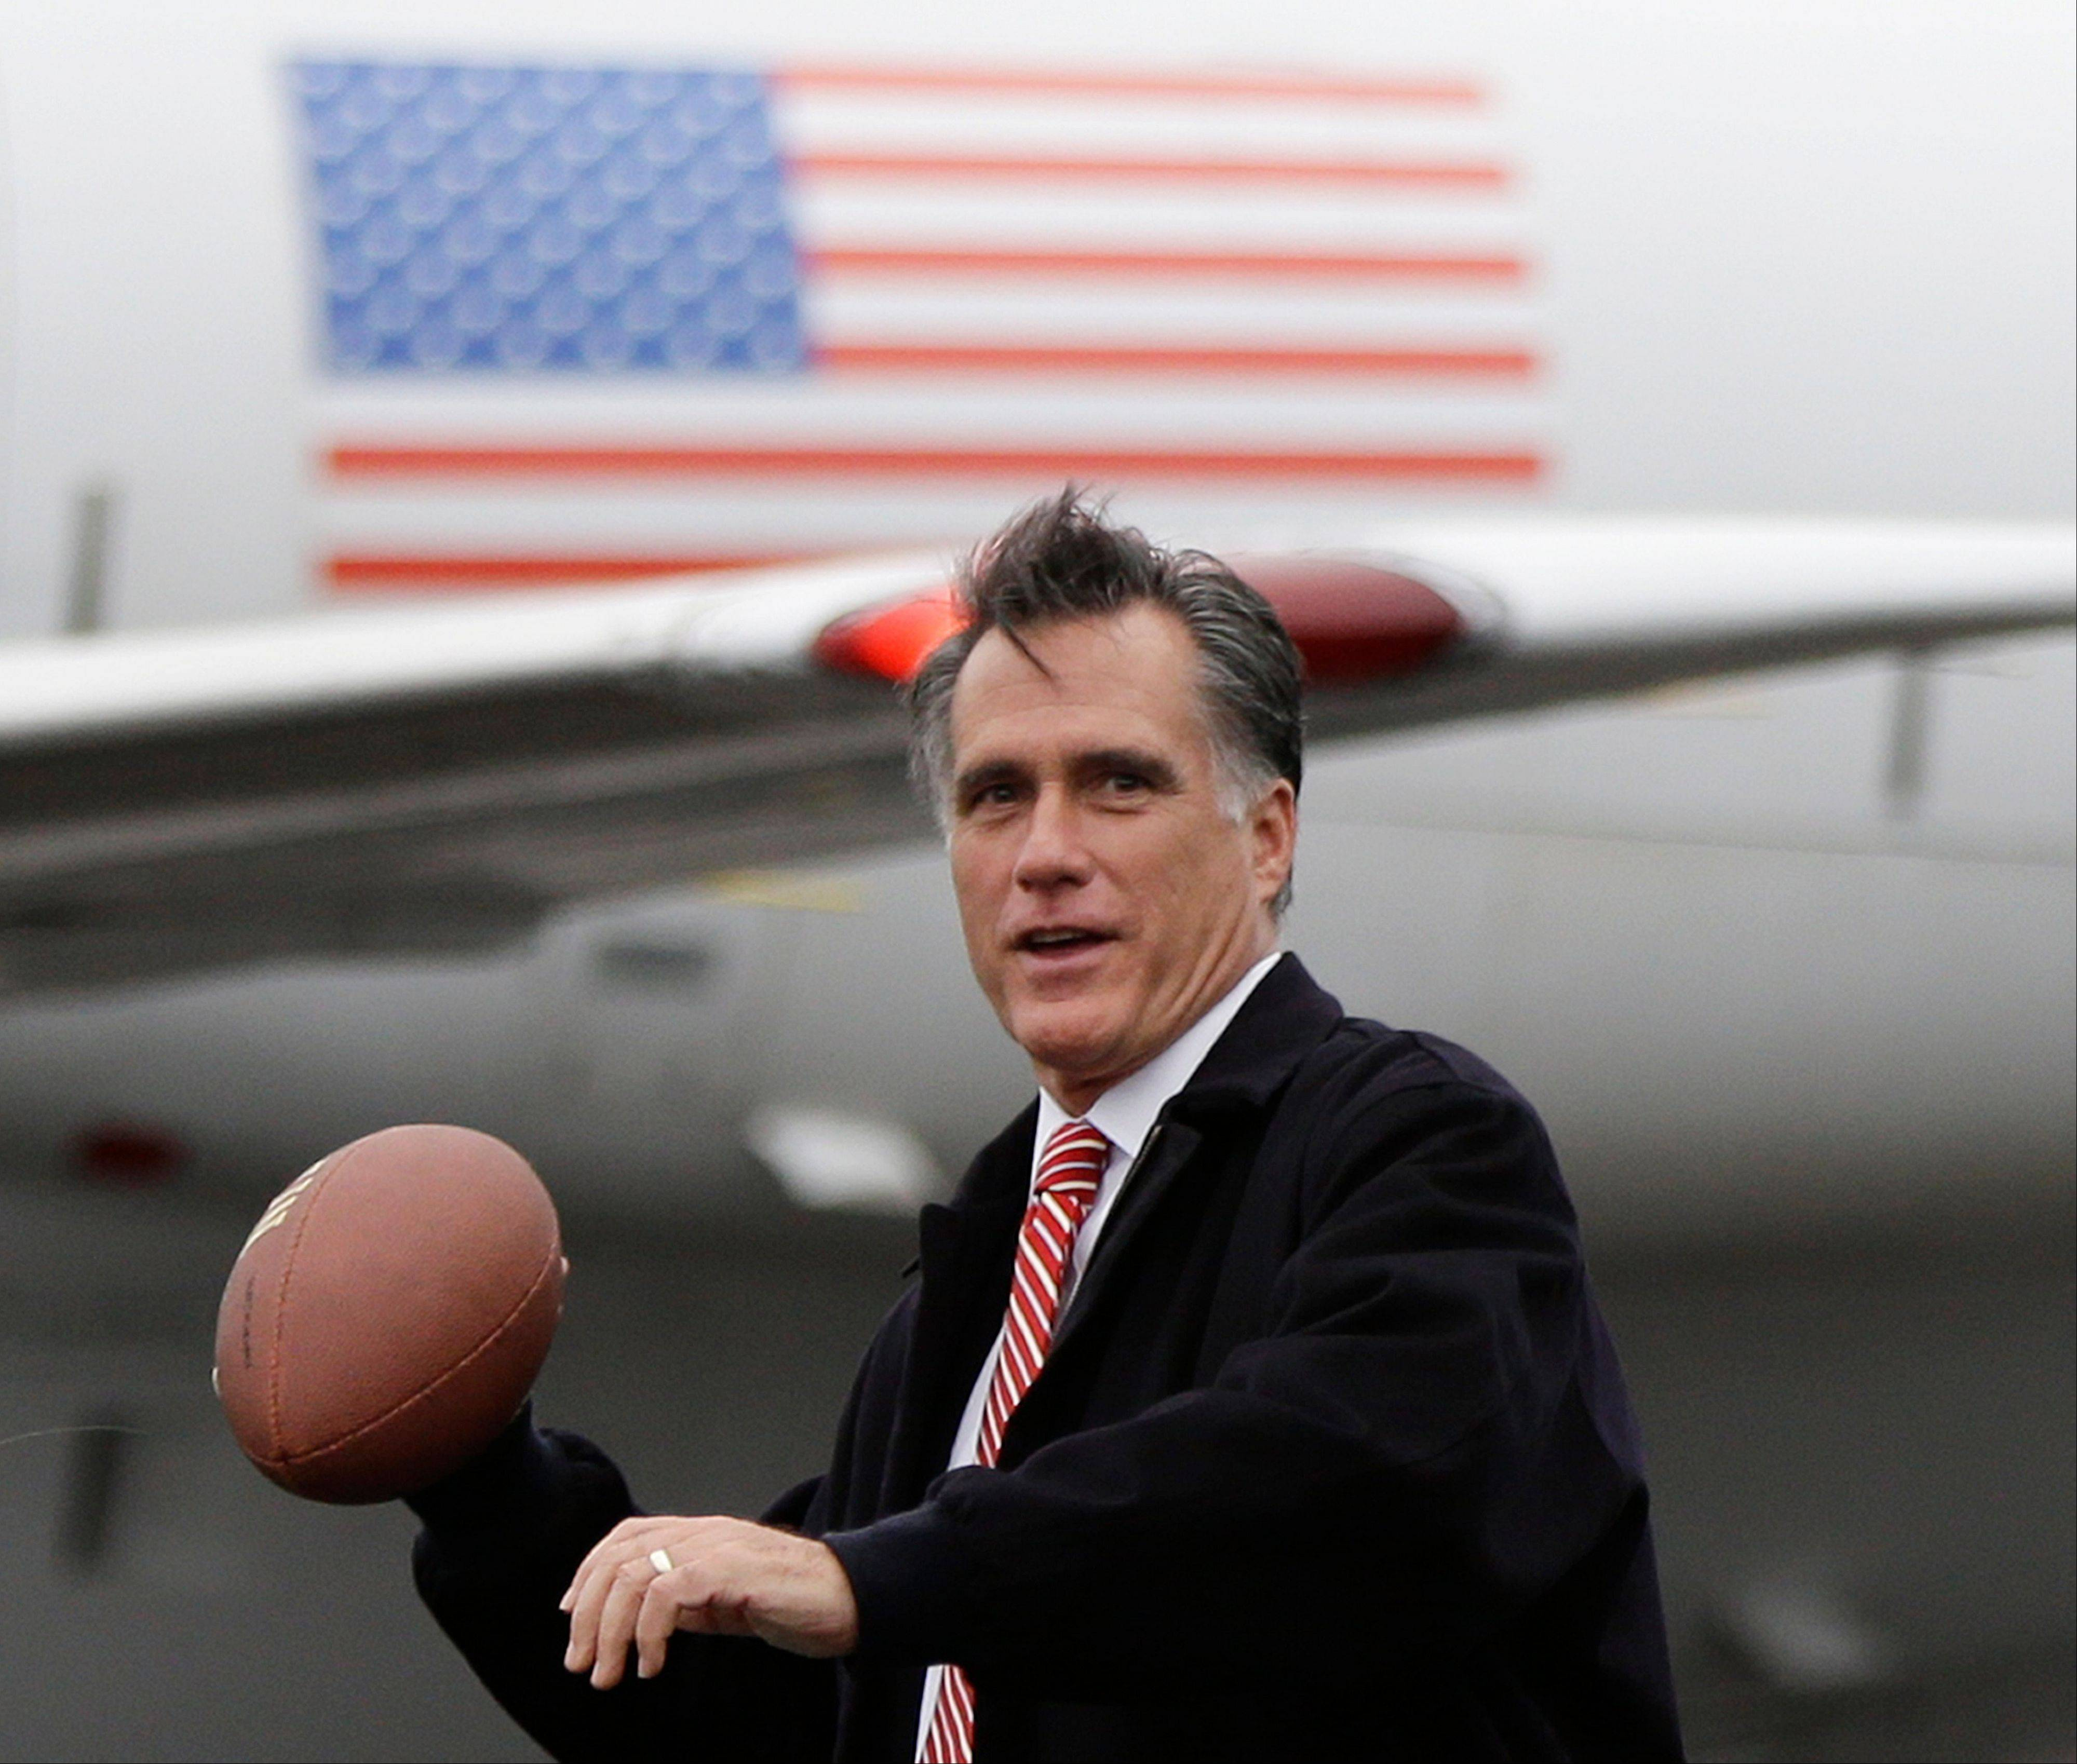 Republican presidential candidate and former Massachusetts Gov. Mitt Romney holds a football Friday on the tarmac of Akron-Canton Regional Airport in Akron, Ohio.